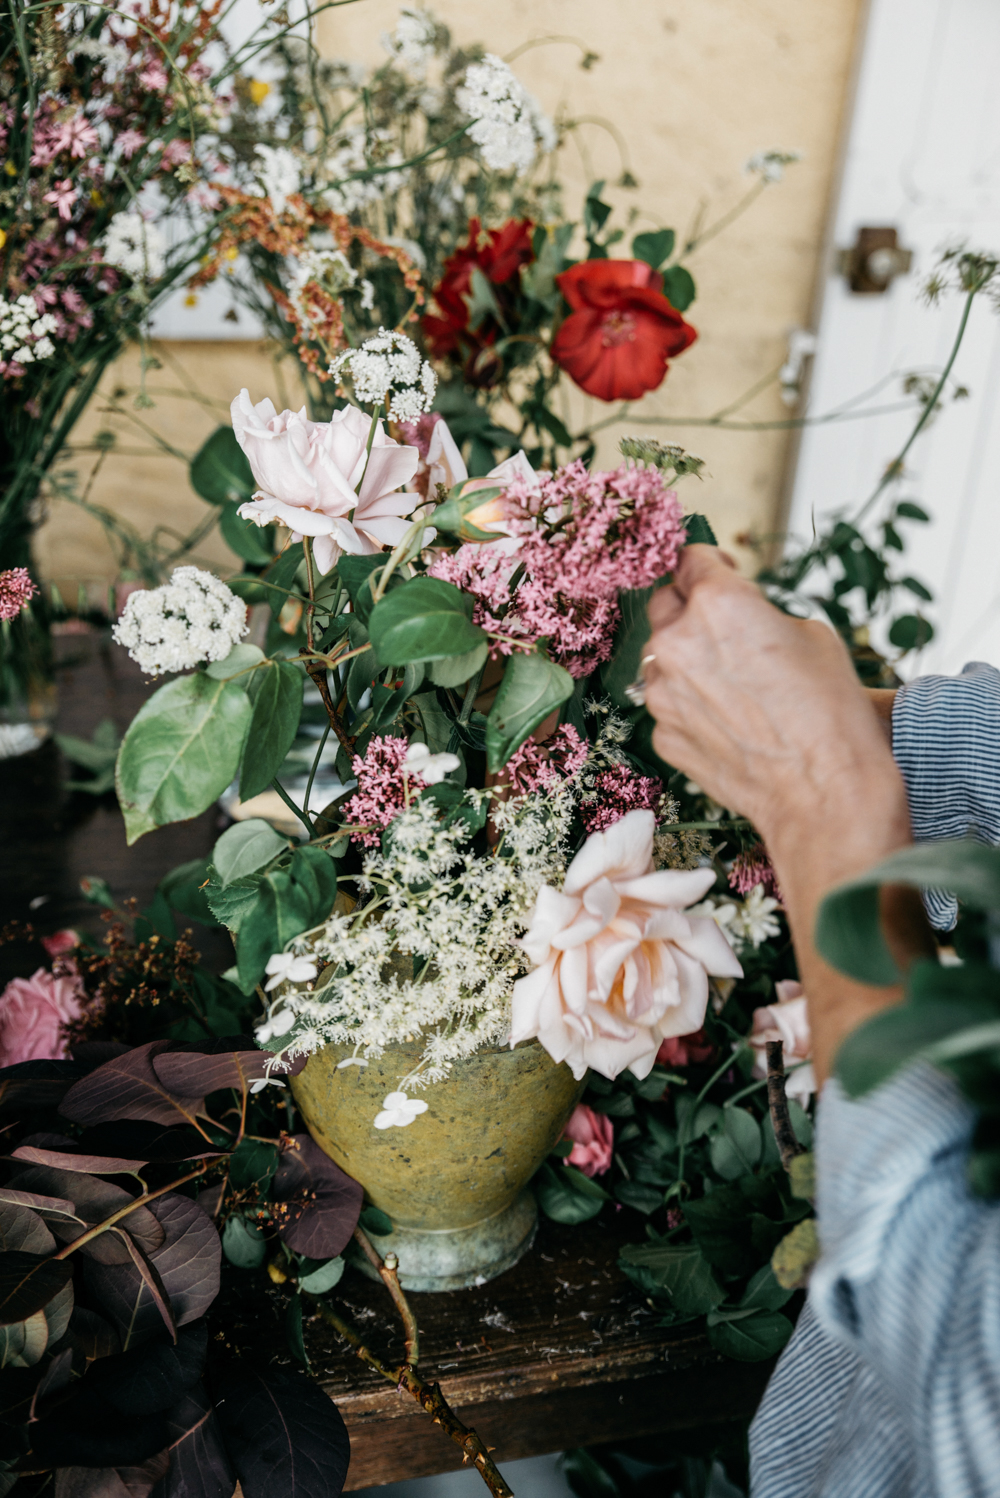 The Academy France - Styling and Photography Workshop for Creatives | Heather Bullard